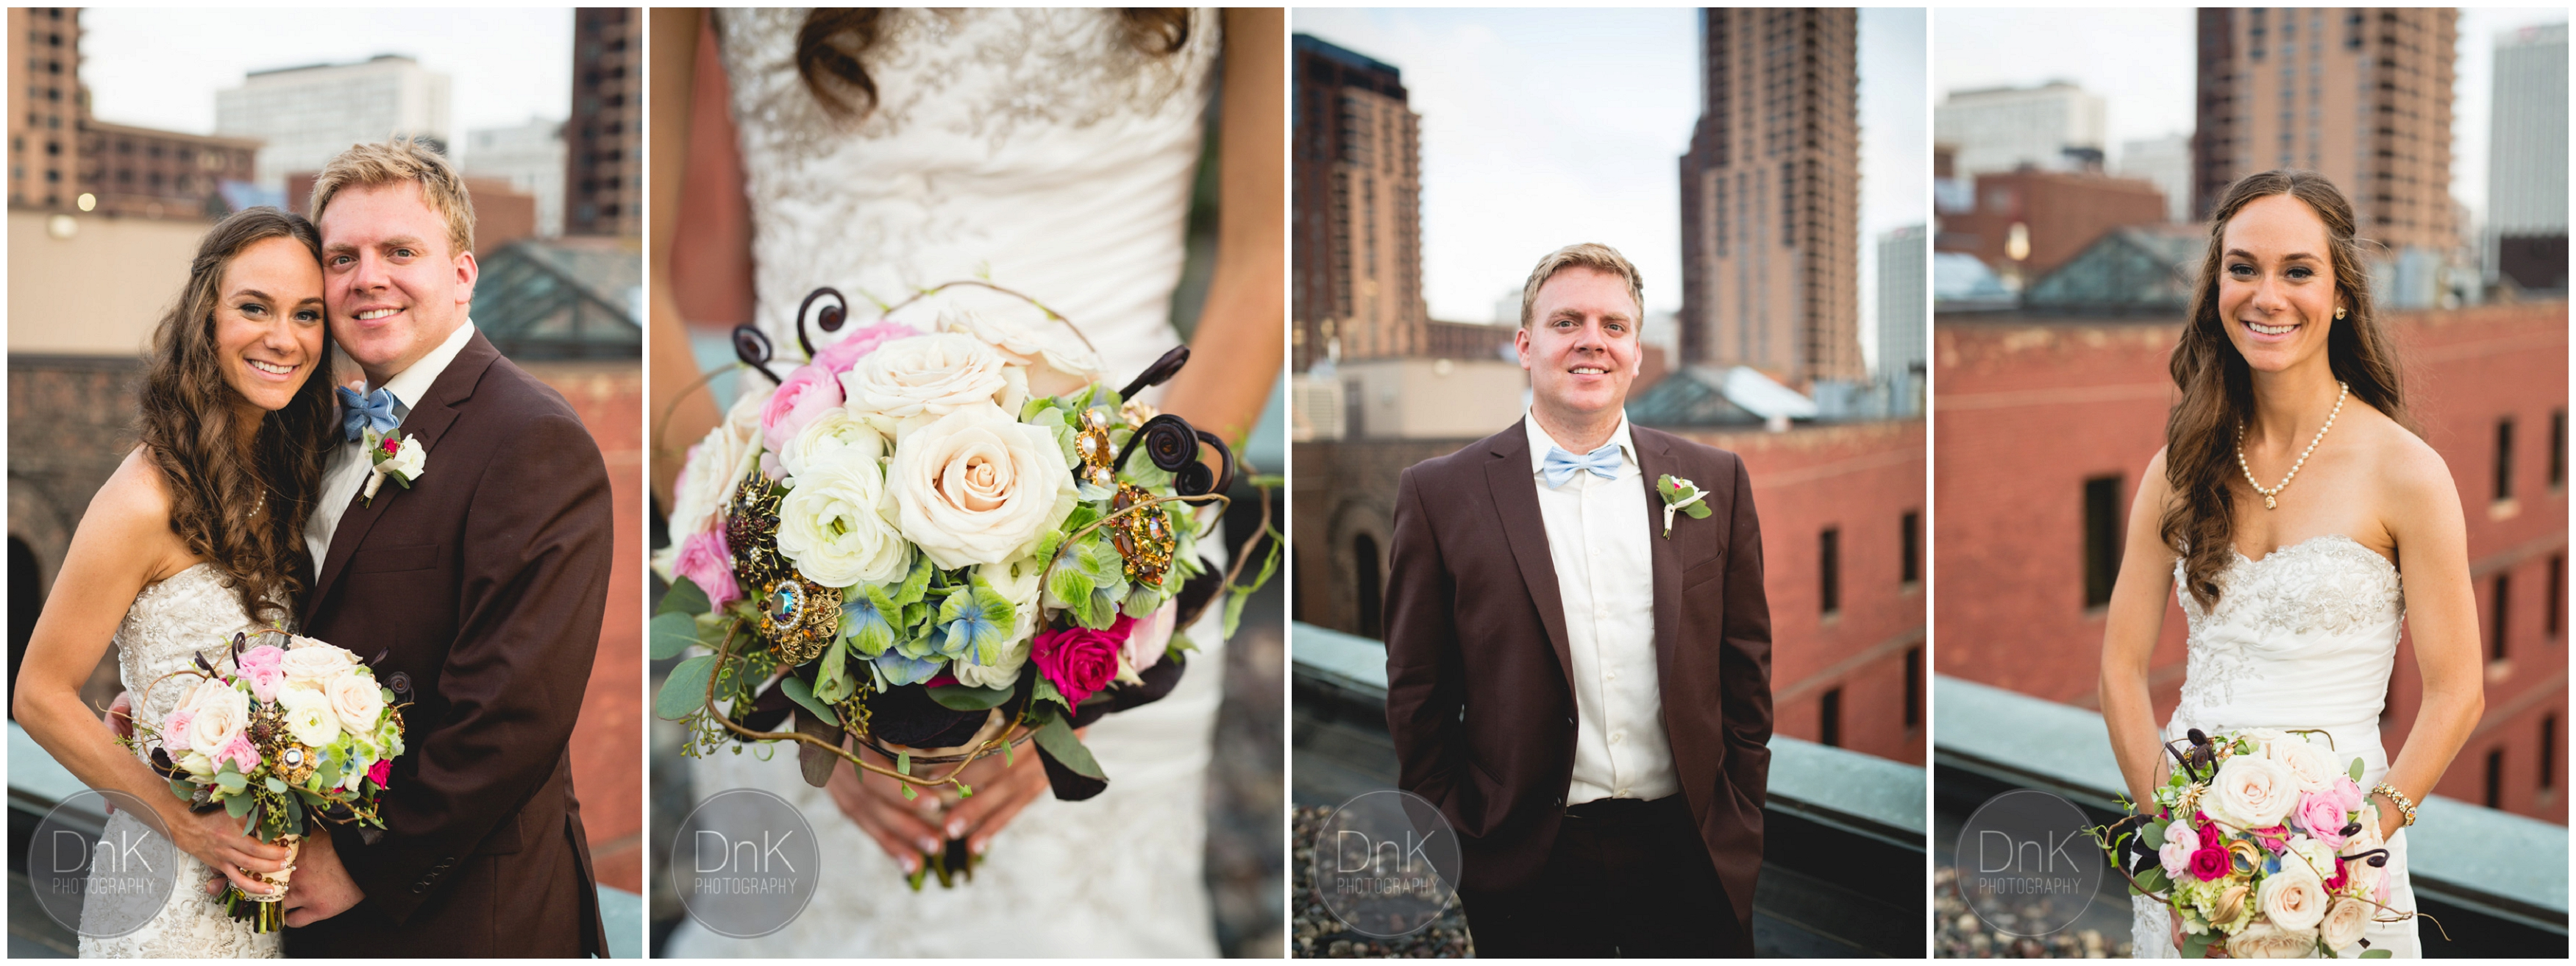 32 - 413 on Wacouta Wedding Pictures Rooftop Wedding Pictures DnK Photography